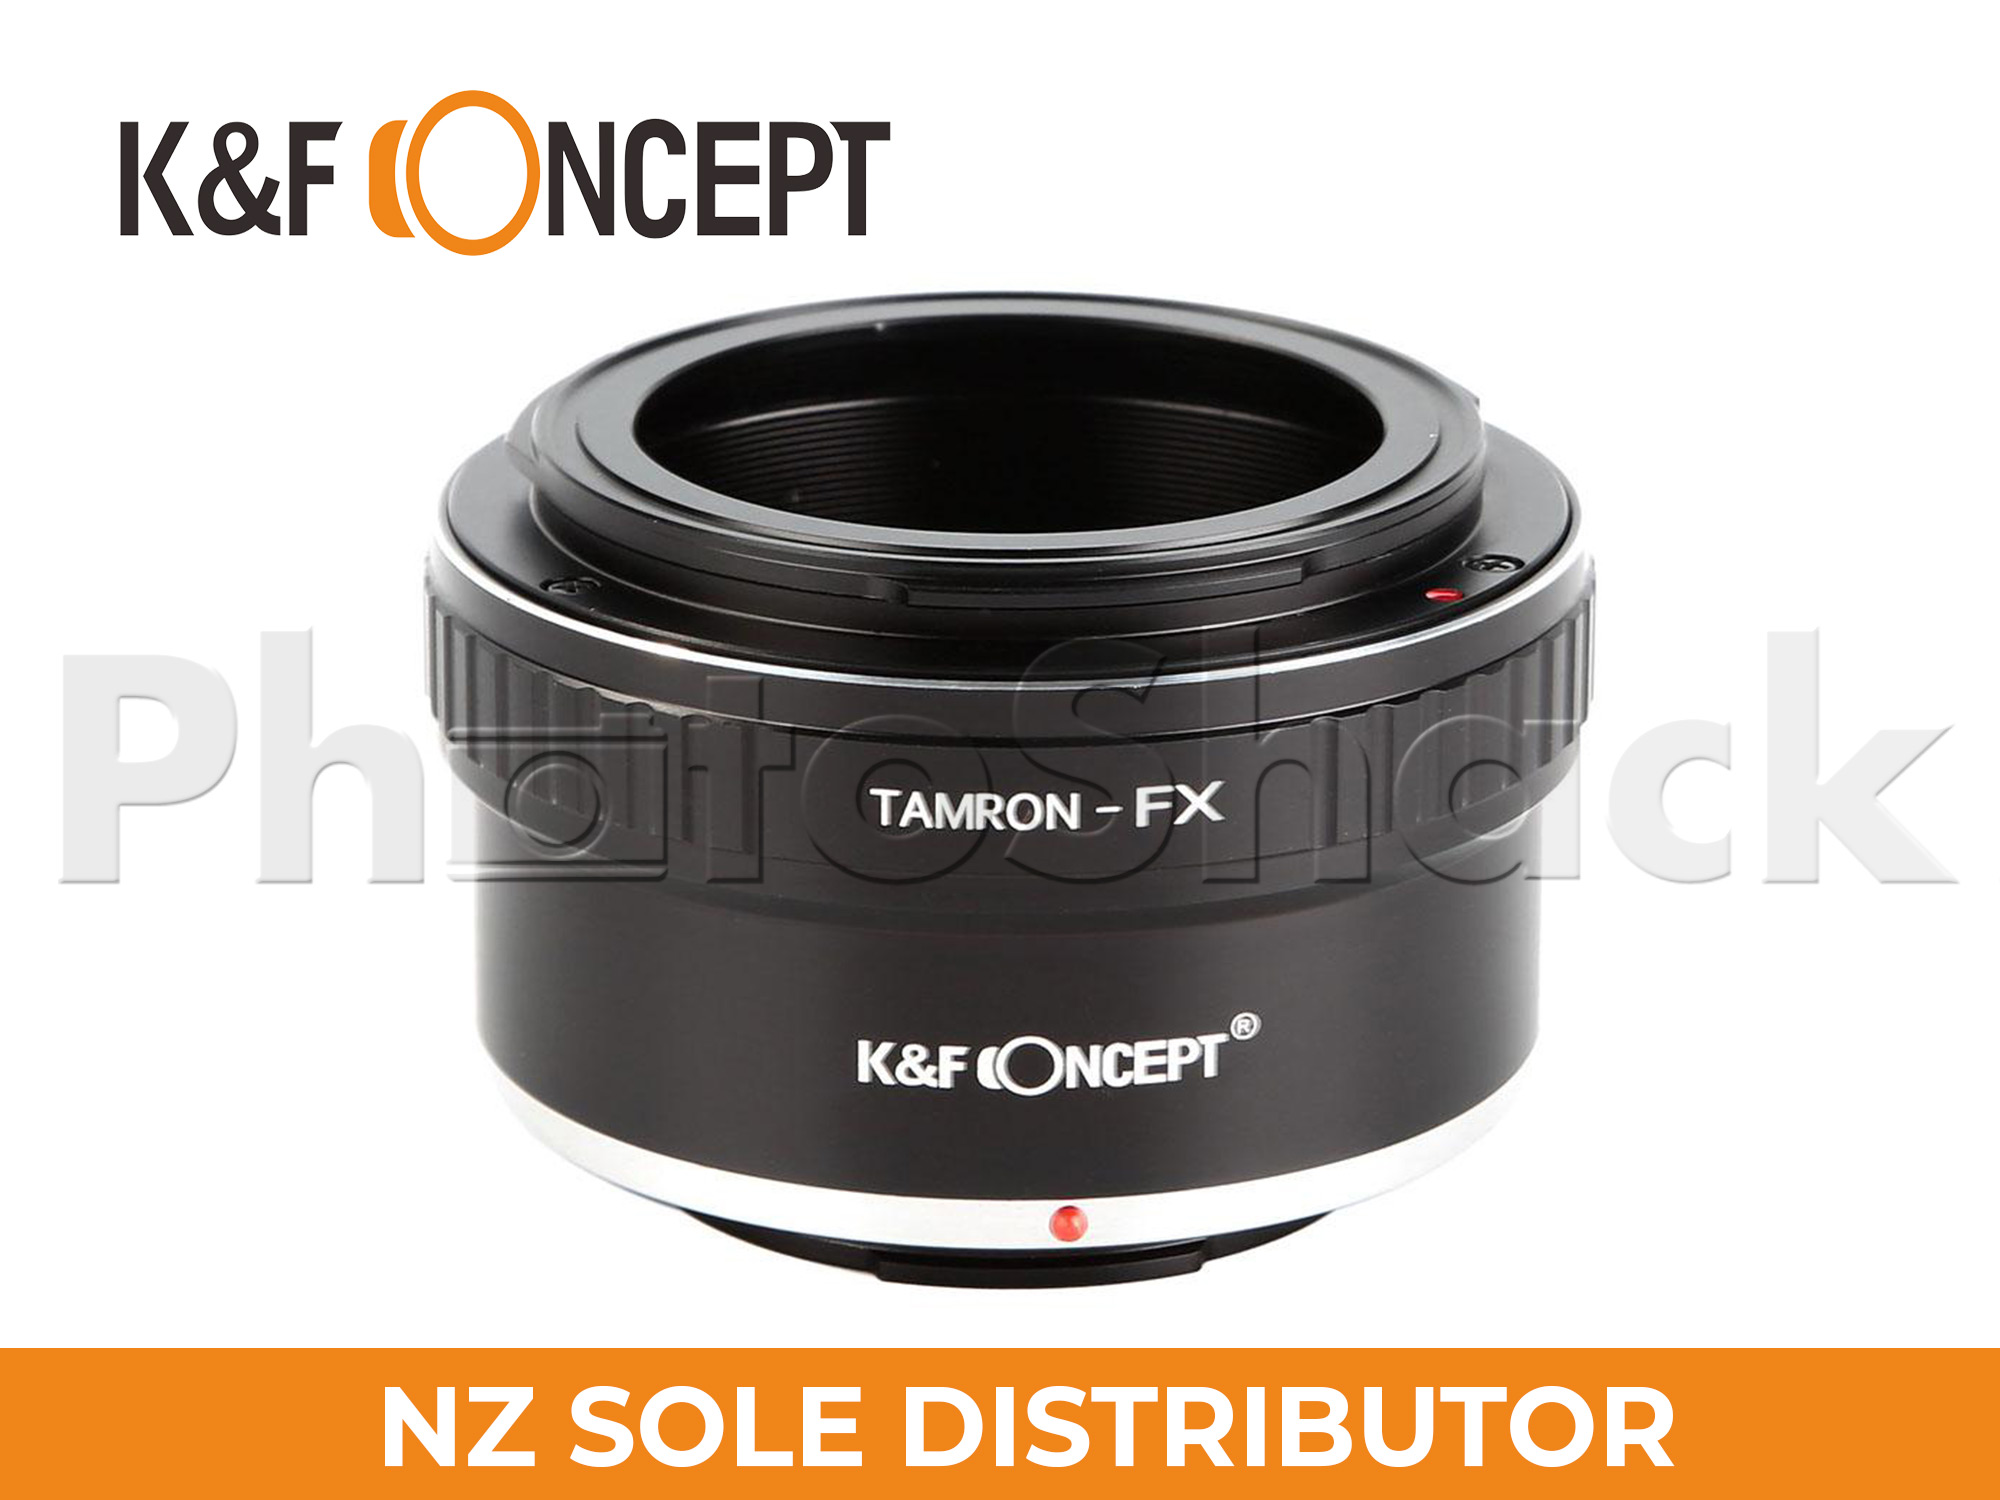 K&F Concept Tamron Adaptall ii Lenses to Fuji X Mount Camera Adapter